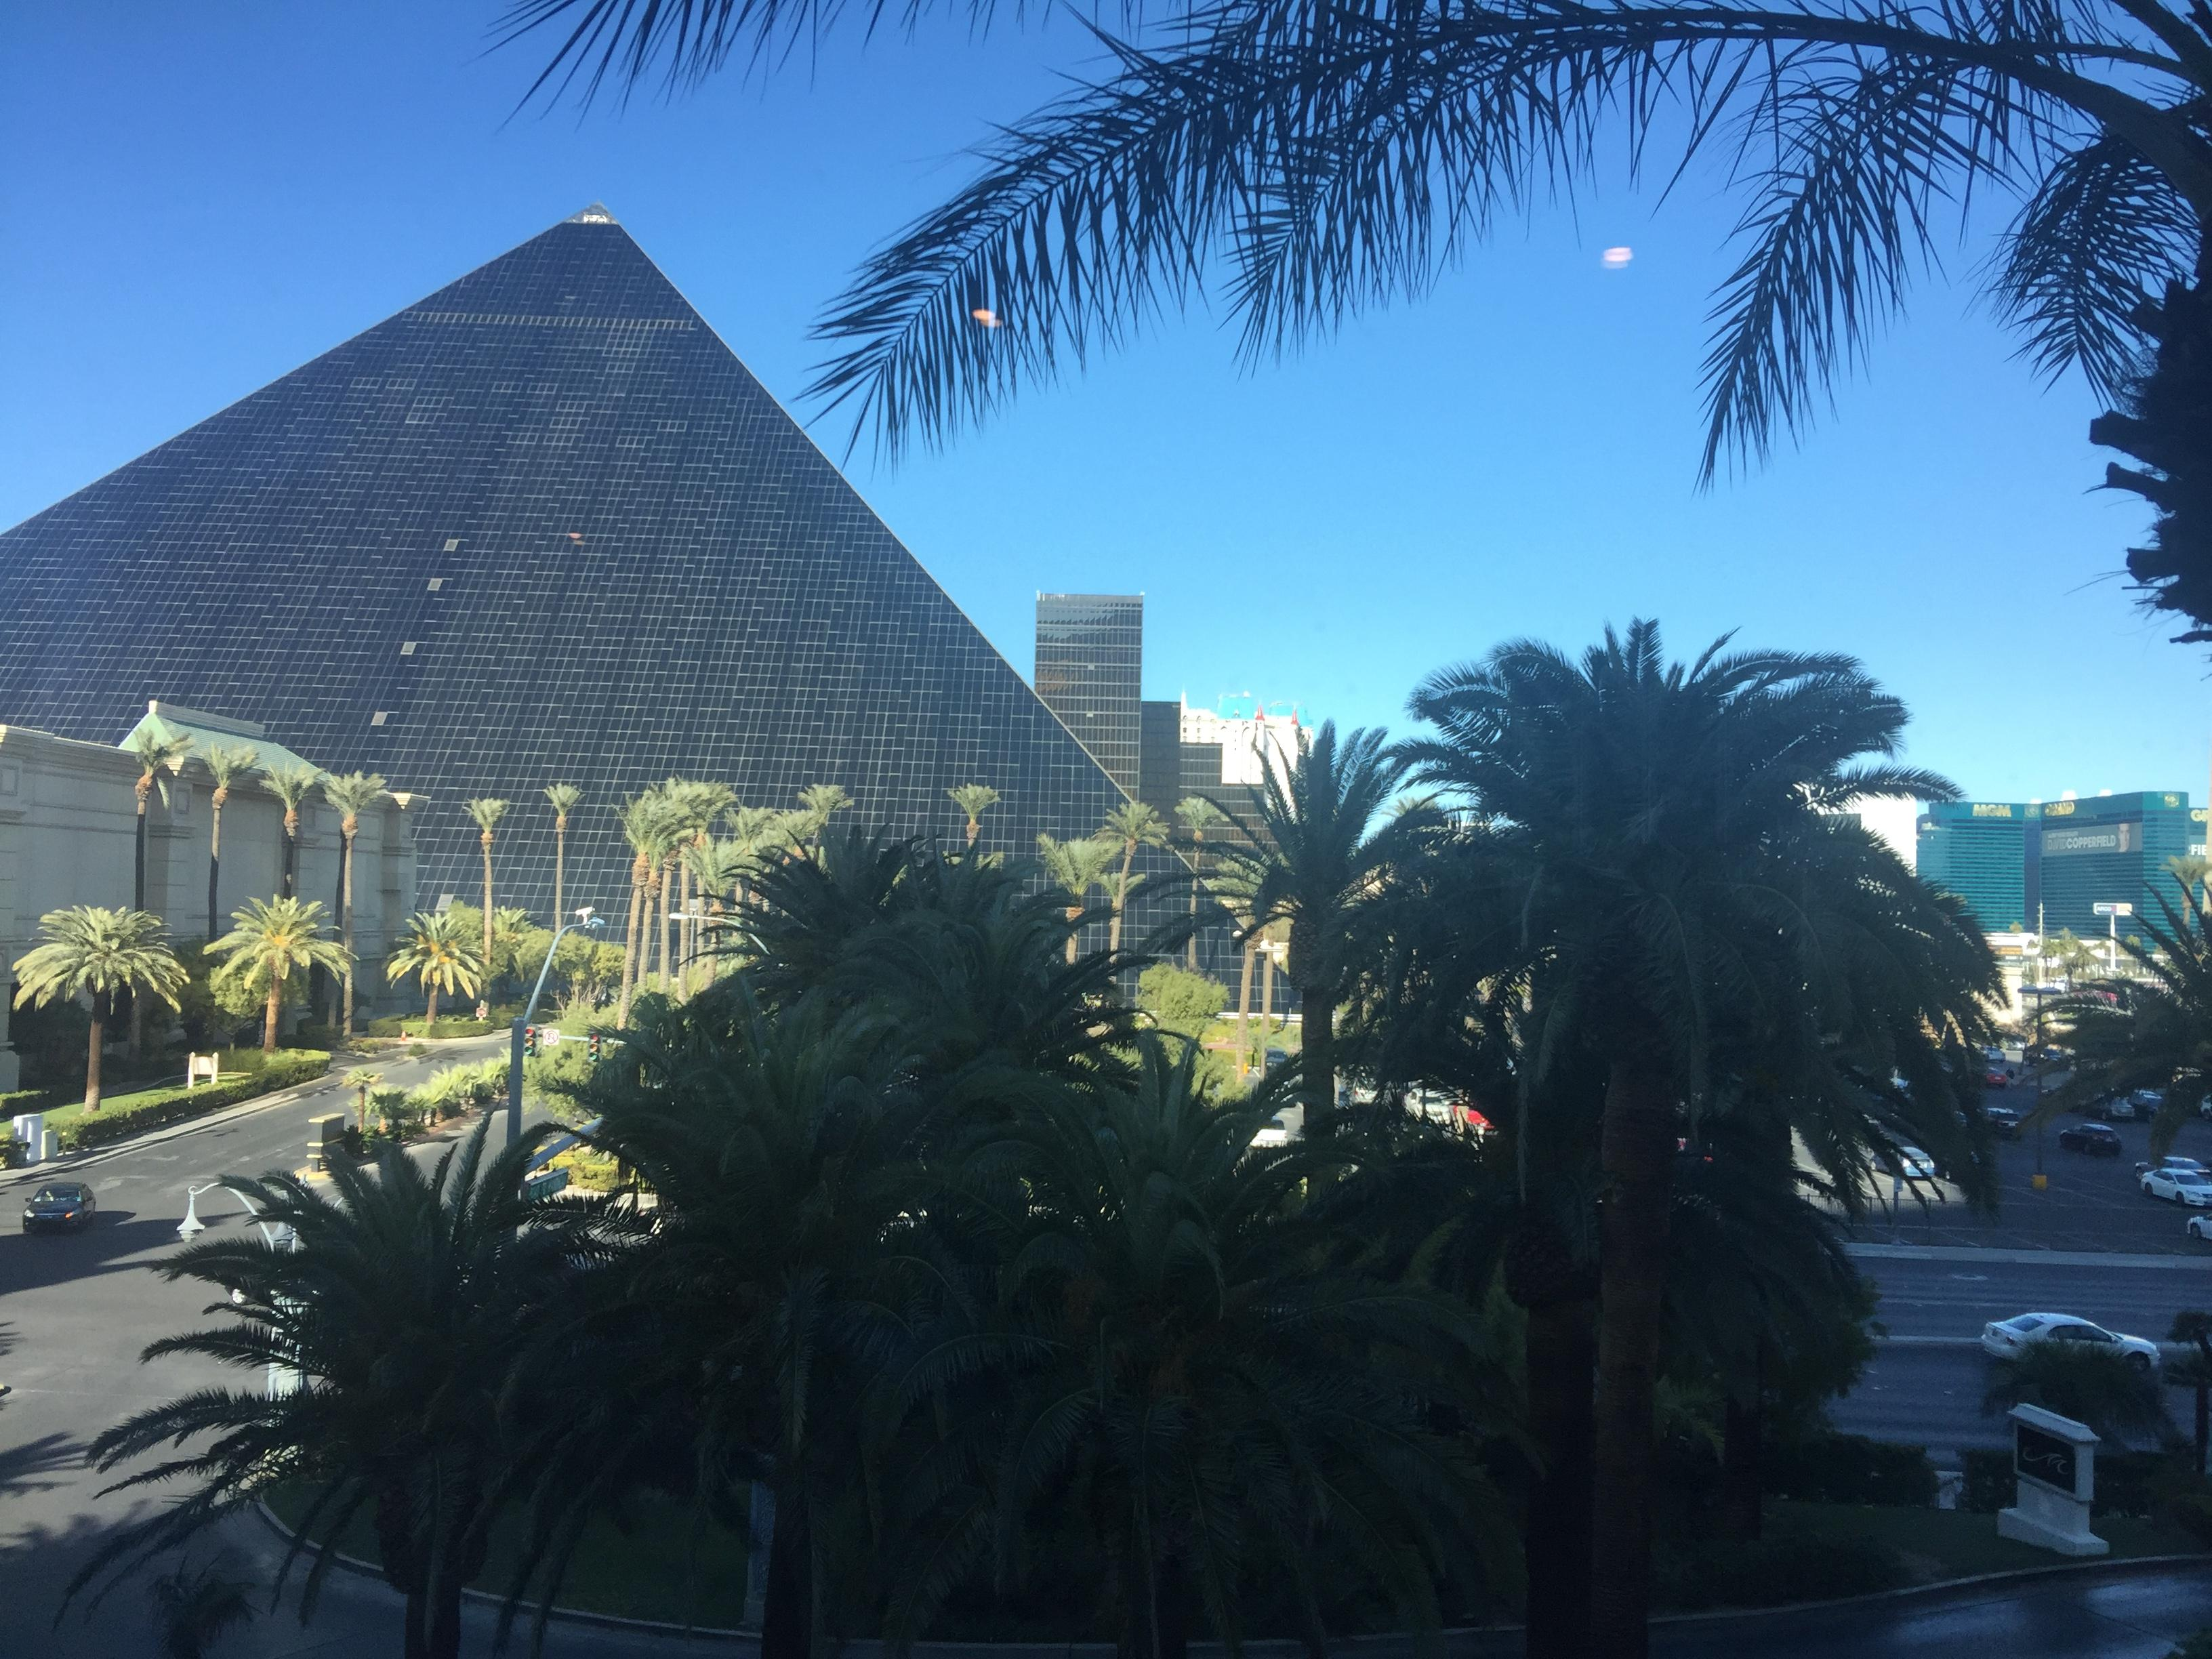 Luxor Pyramid from the Mandalay Bay Tram Station